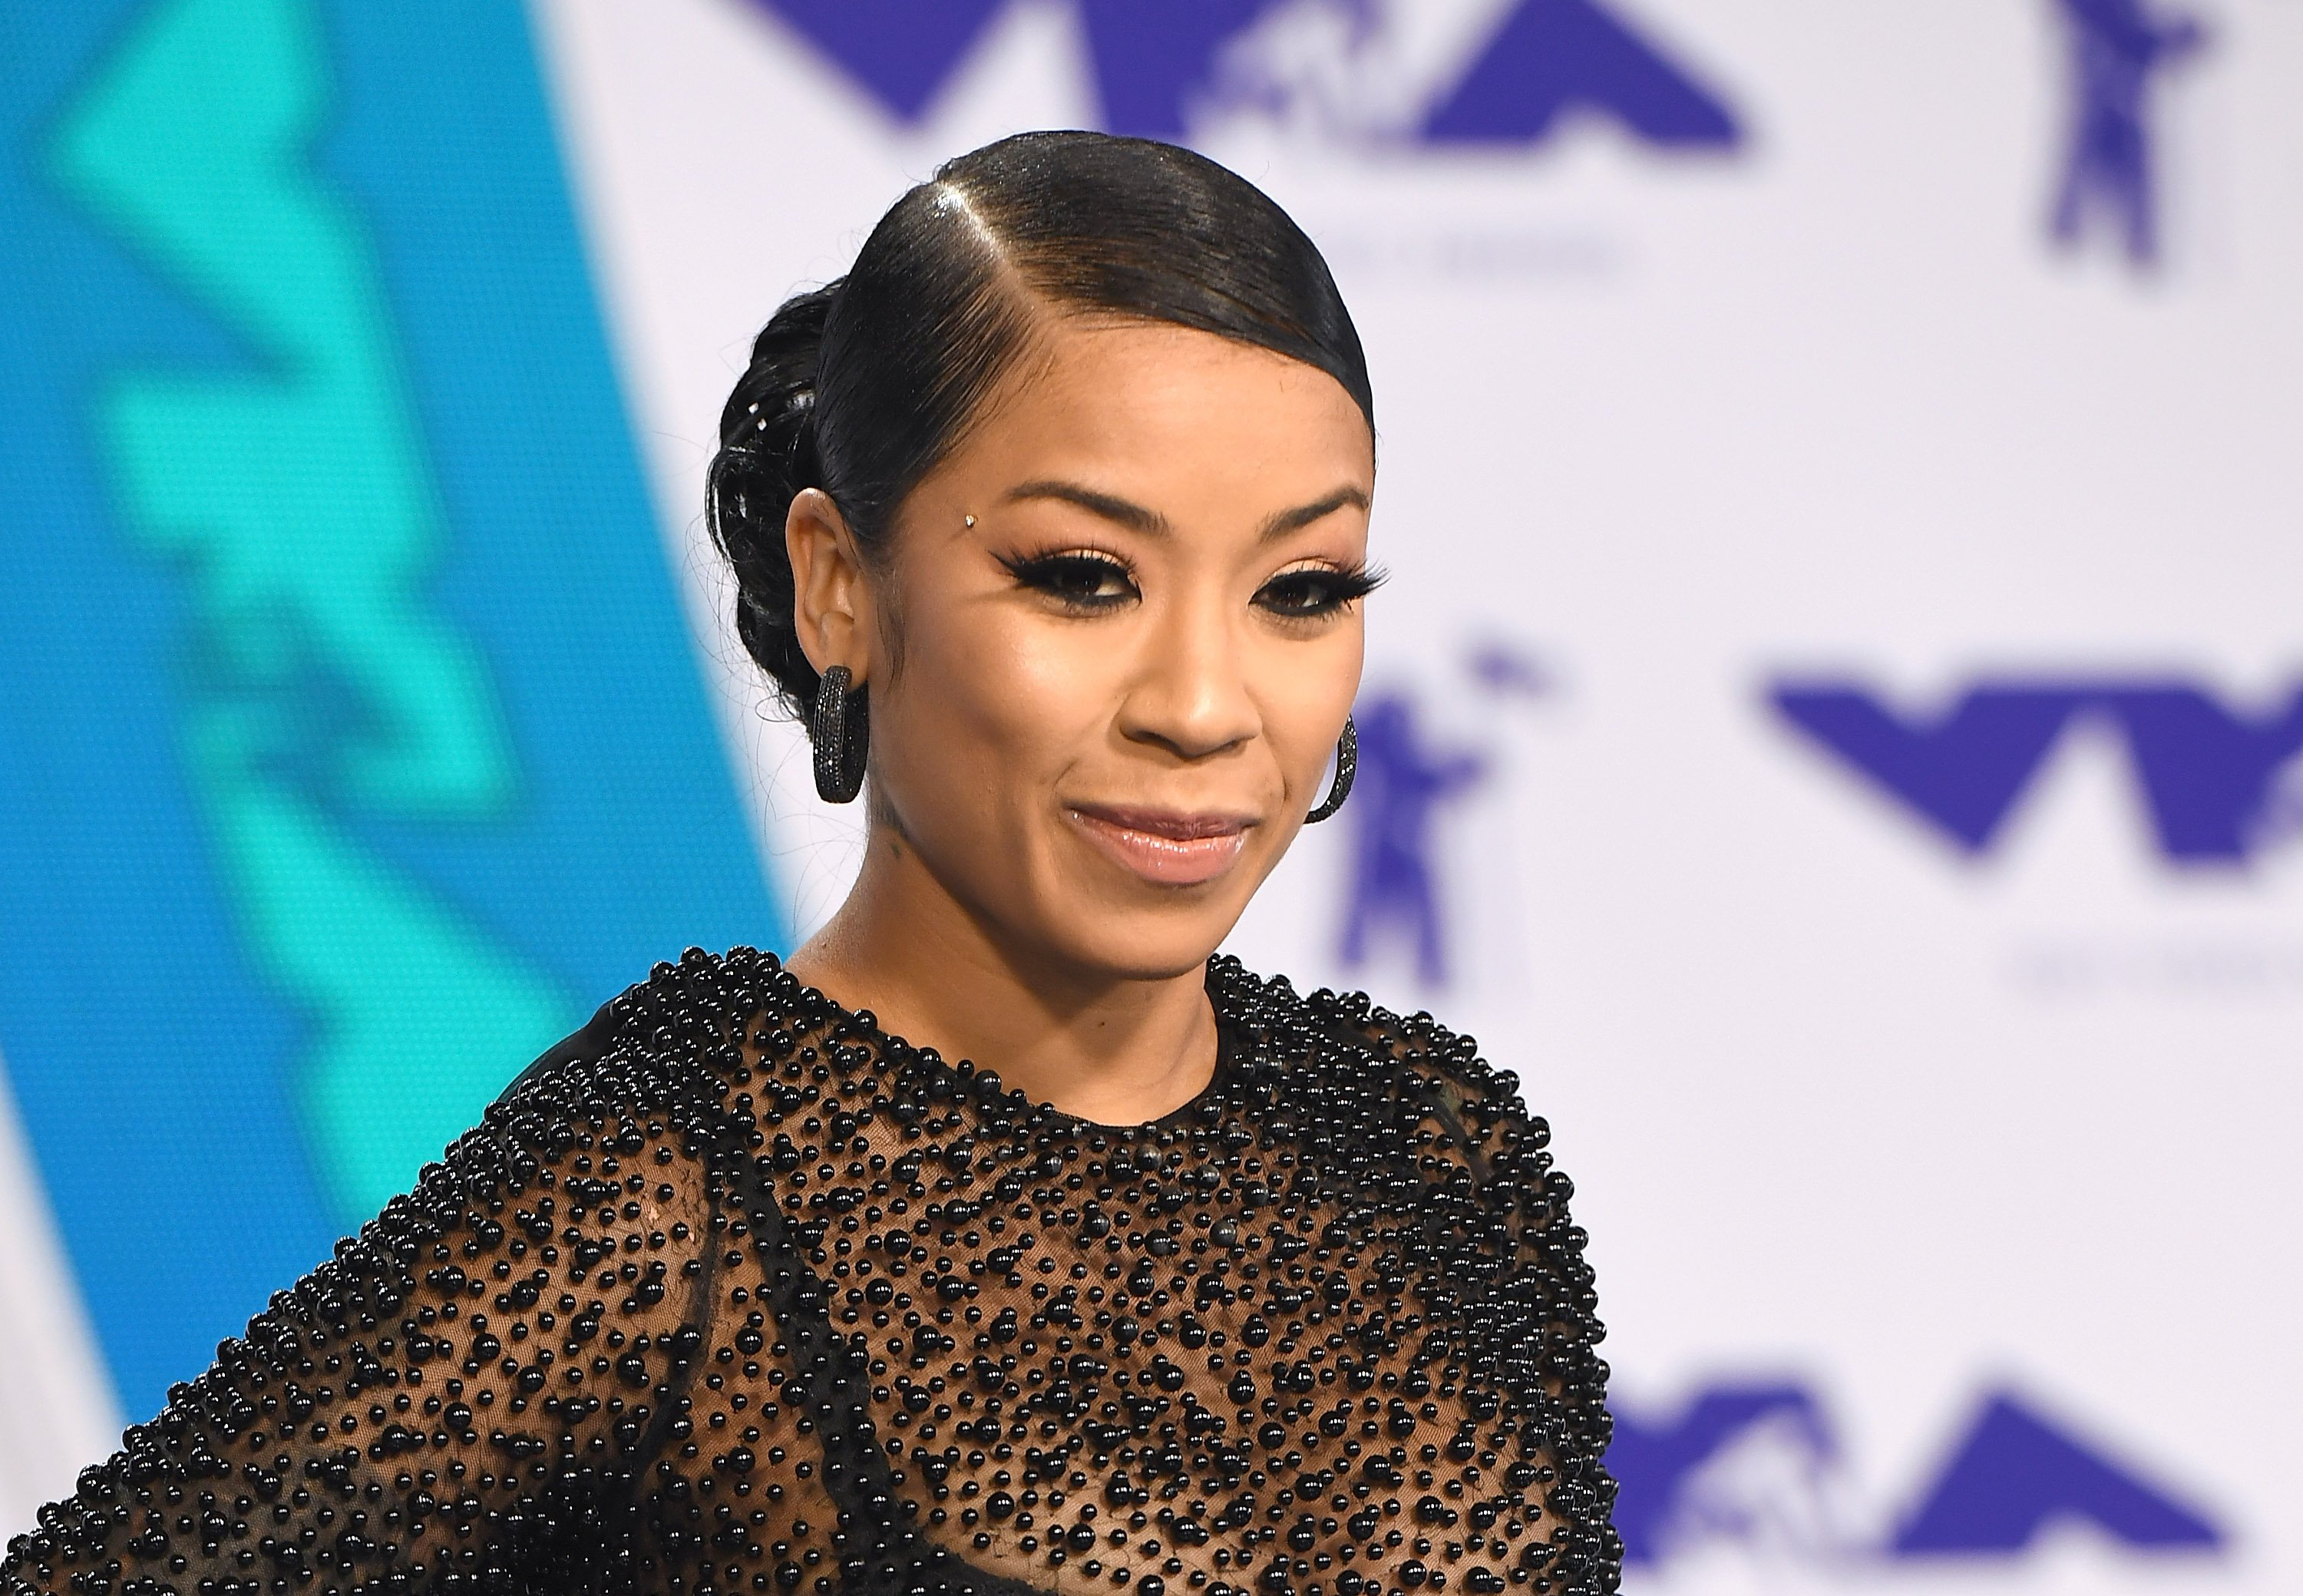 Keyshia Cole attends the 2017 MTV Video Music Awards. | Photo: GettyImages